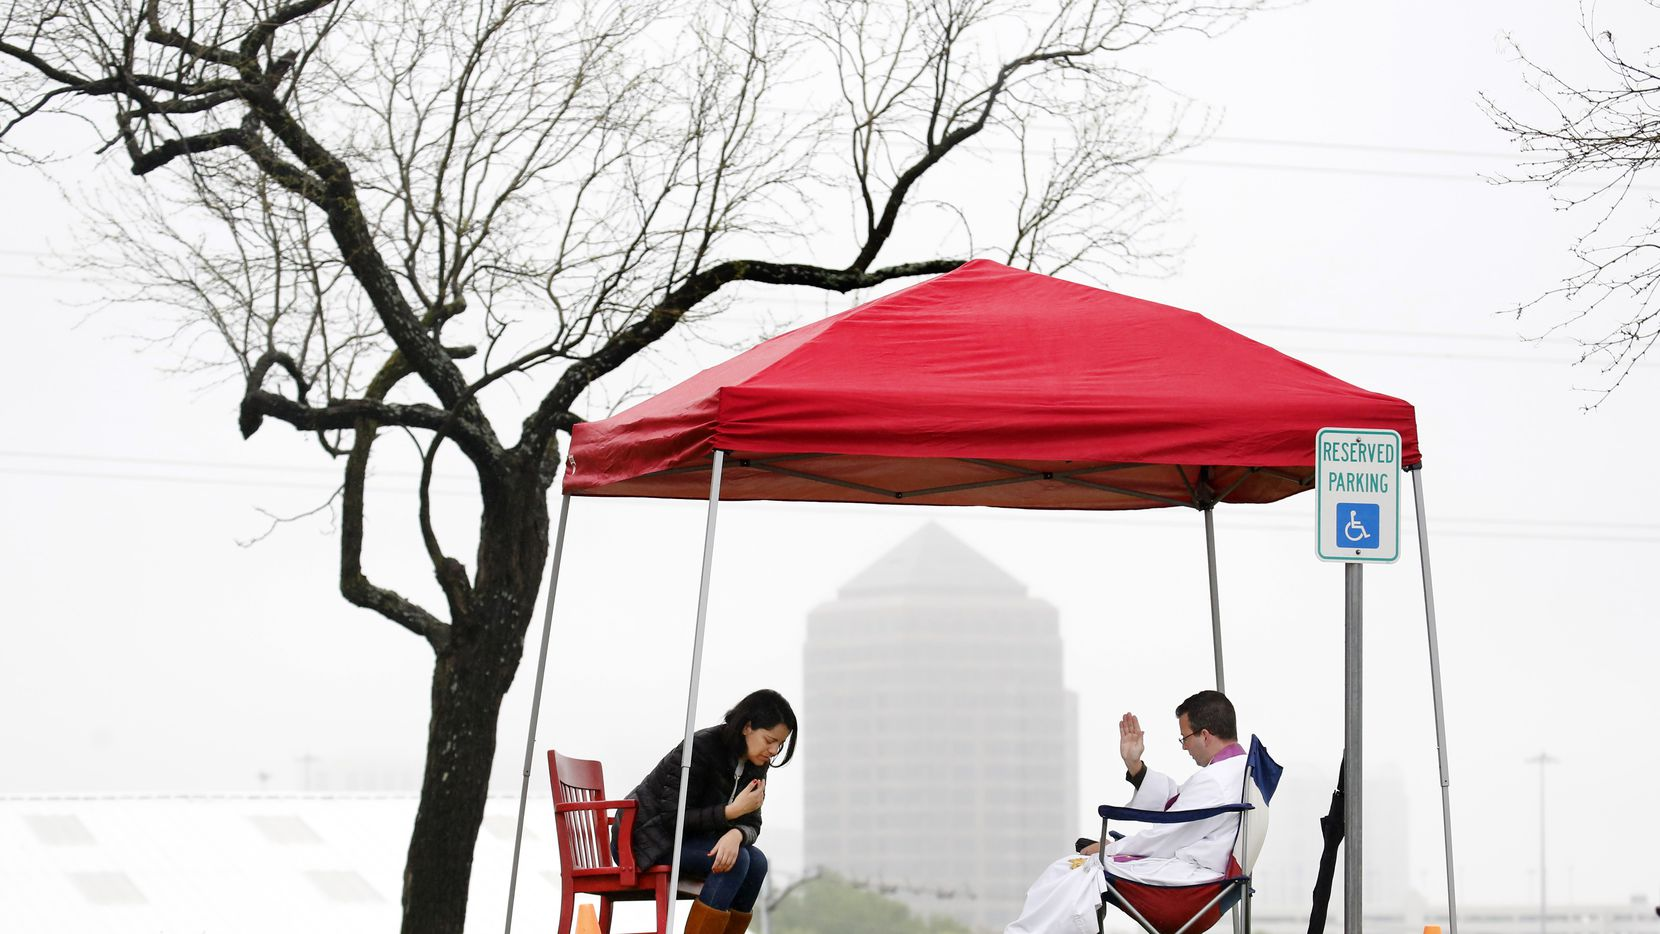 Under a light mist, Regnum Christi priest Fr. Michael Picard (right) prays for Anabel Cardova of Coppell as he listened to her confessions at The Highlands School in Irving, Texas. Priests took confessions from parishioners under tents as they drove up in their cars, Sunday, March 22, 2020. With public spaces shut down amid the coronavirus pandemic, churches are getting creative about providing sacramental relief to their members.